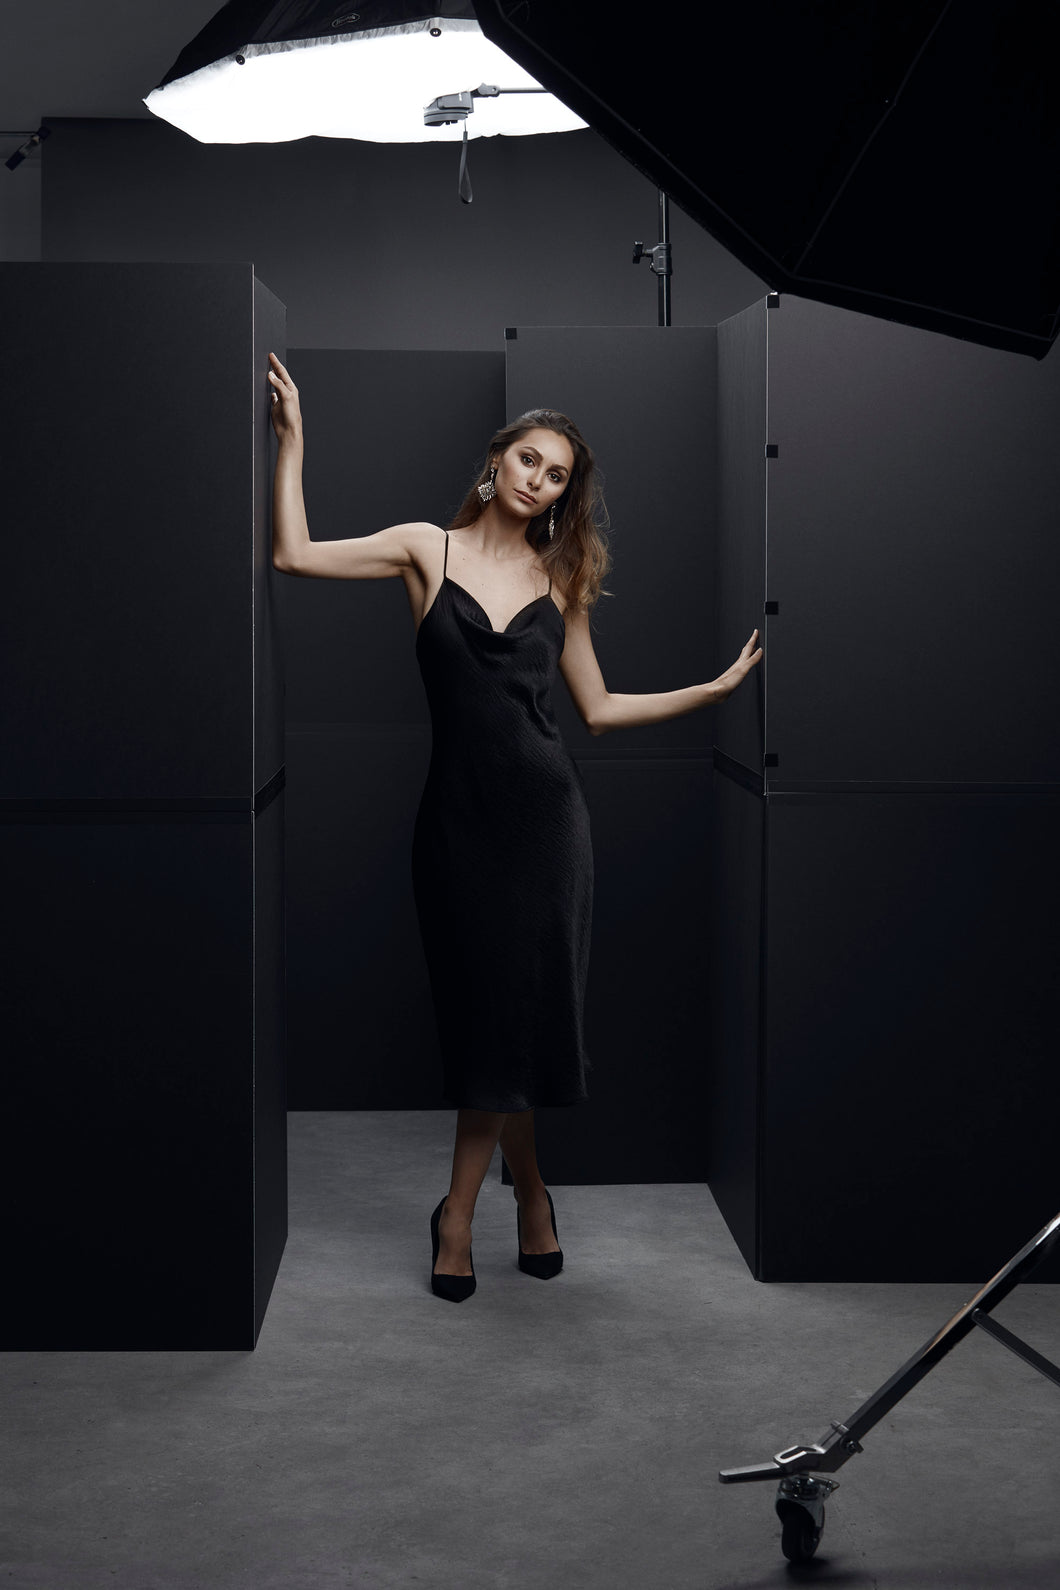 image of girl in black dress